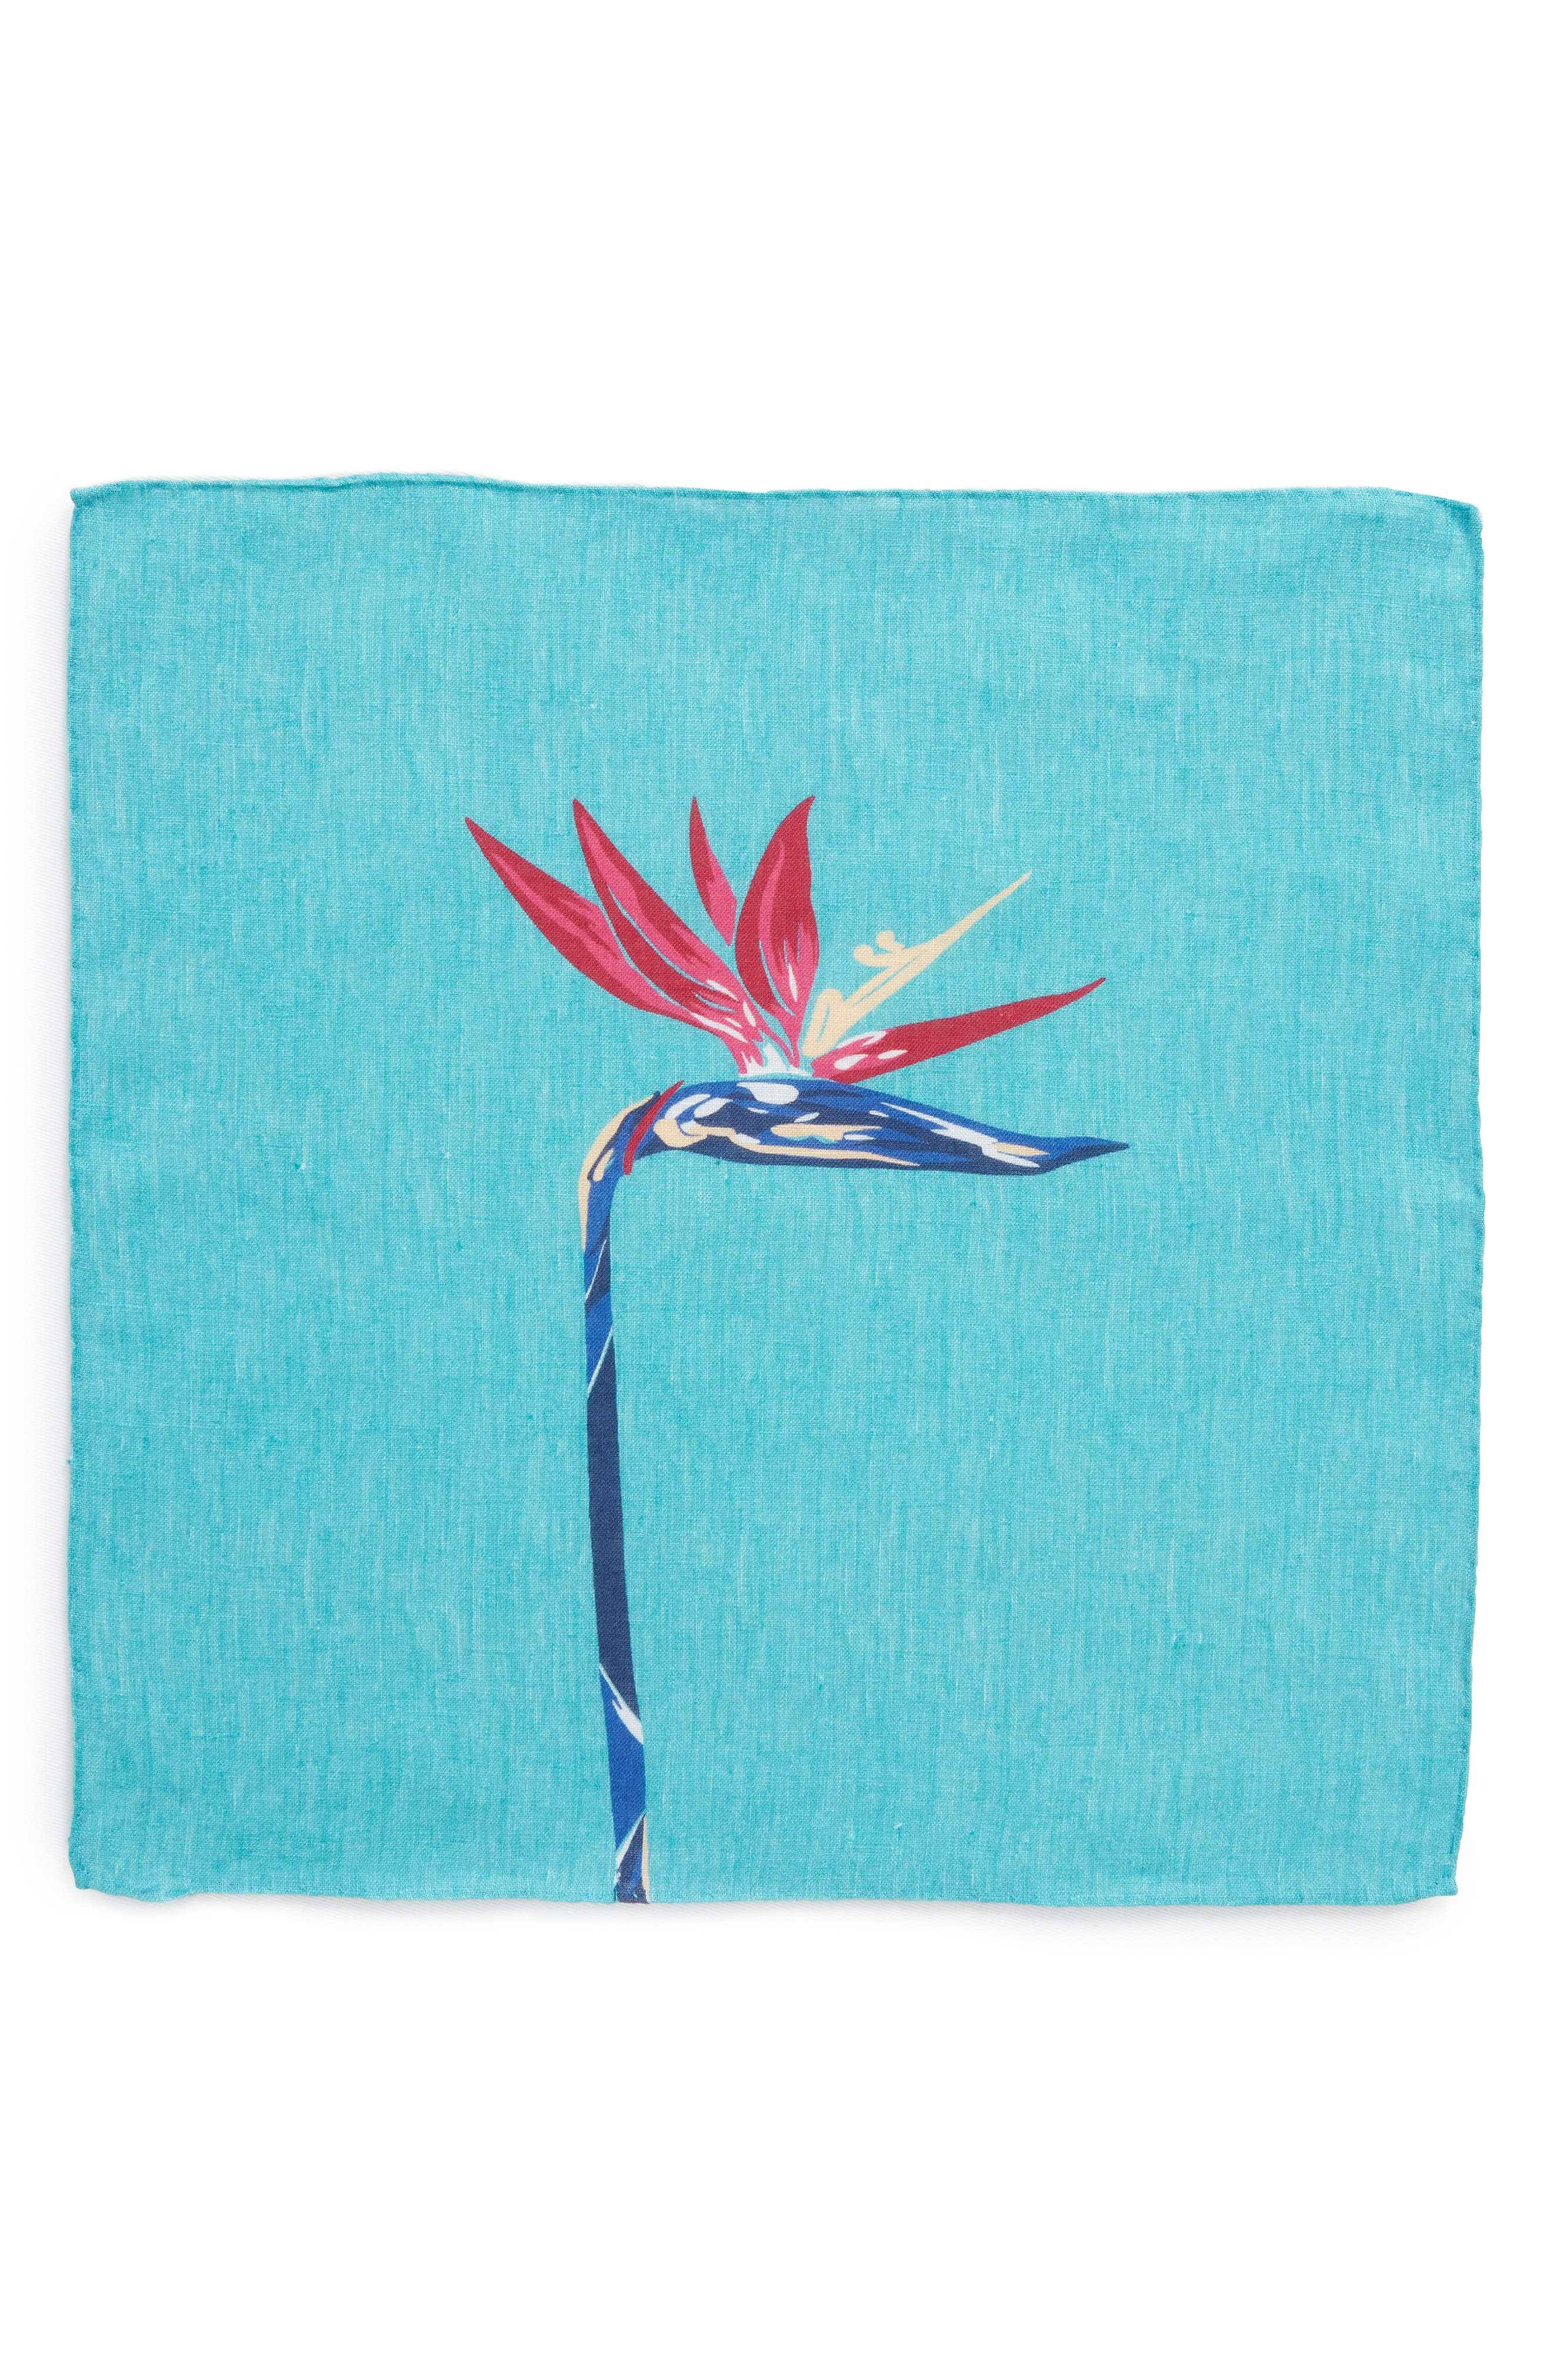 Birds of Paradise Floral Linen Pocket Square,                             Alternate thumbnail 3, color,                             Pappagallo Teal